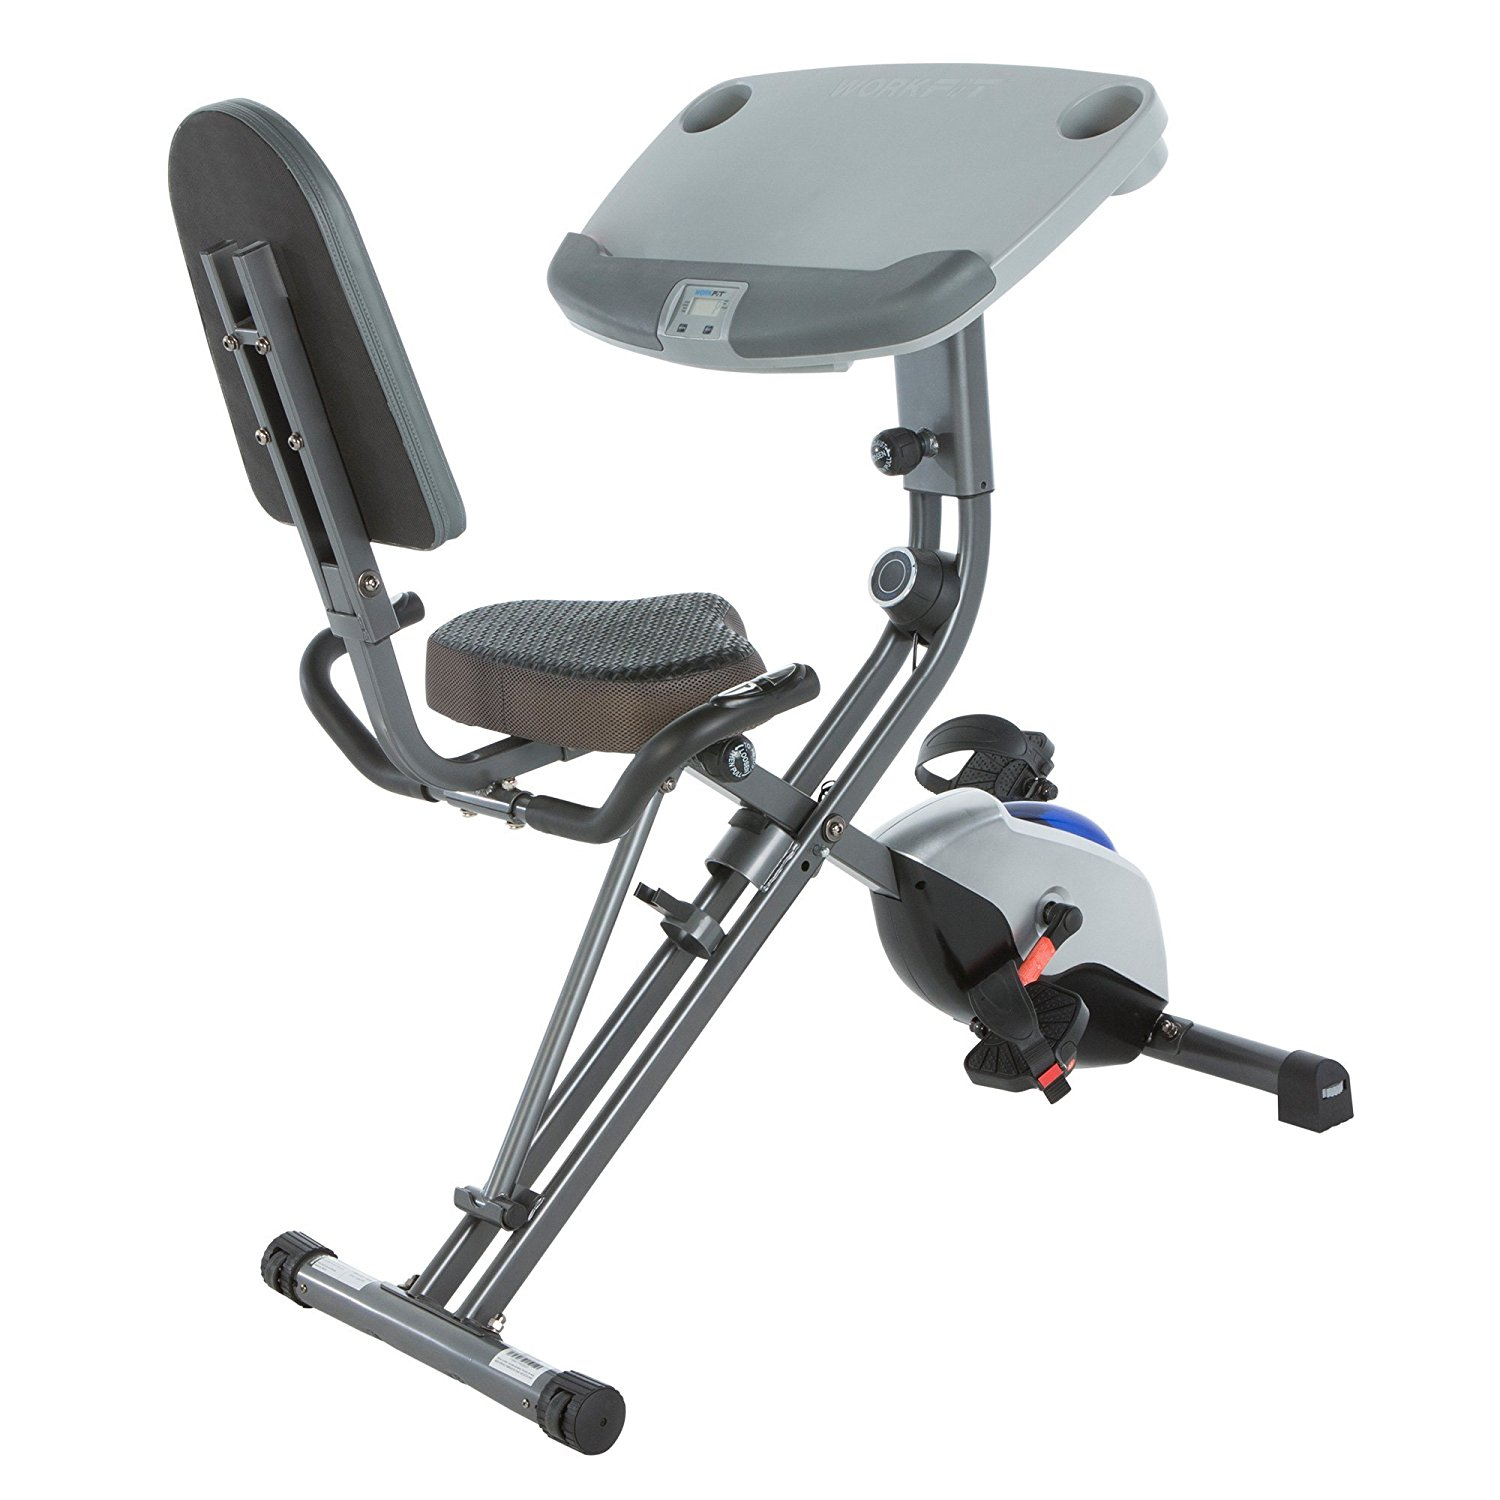 Exerpeutic WorkFit 1000 Desk Station Folding Exercise Bike Reviews